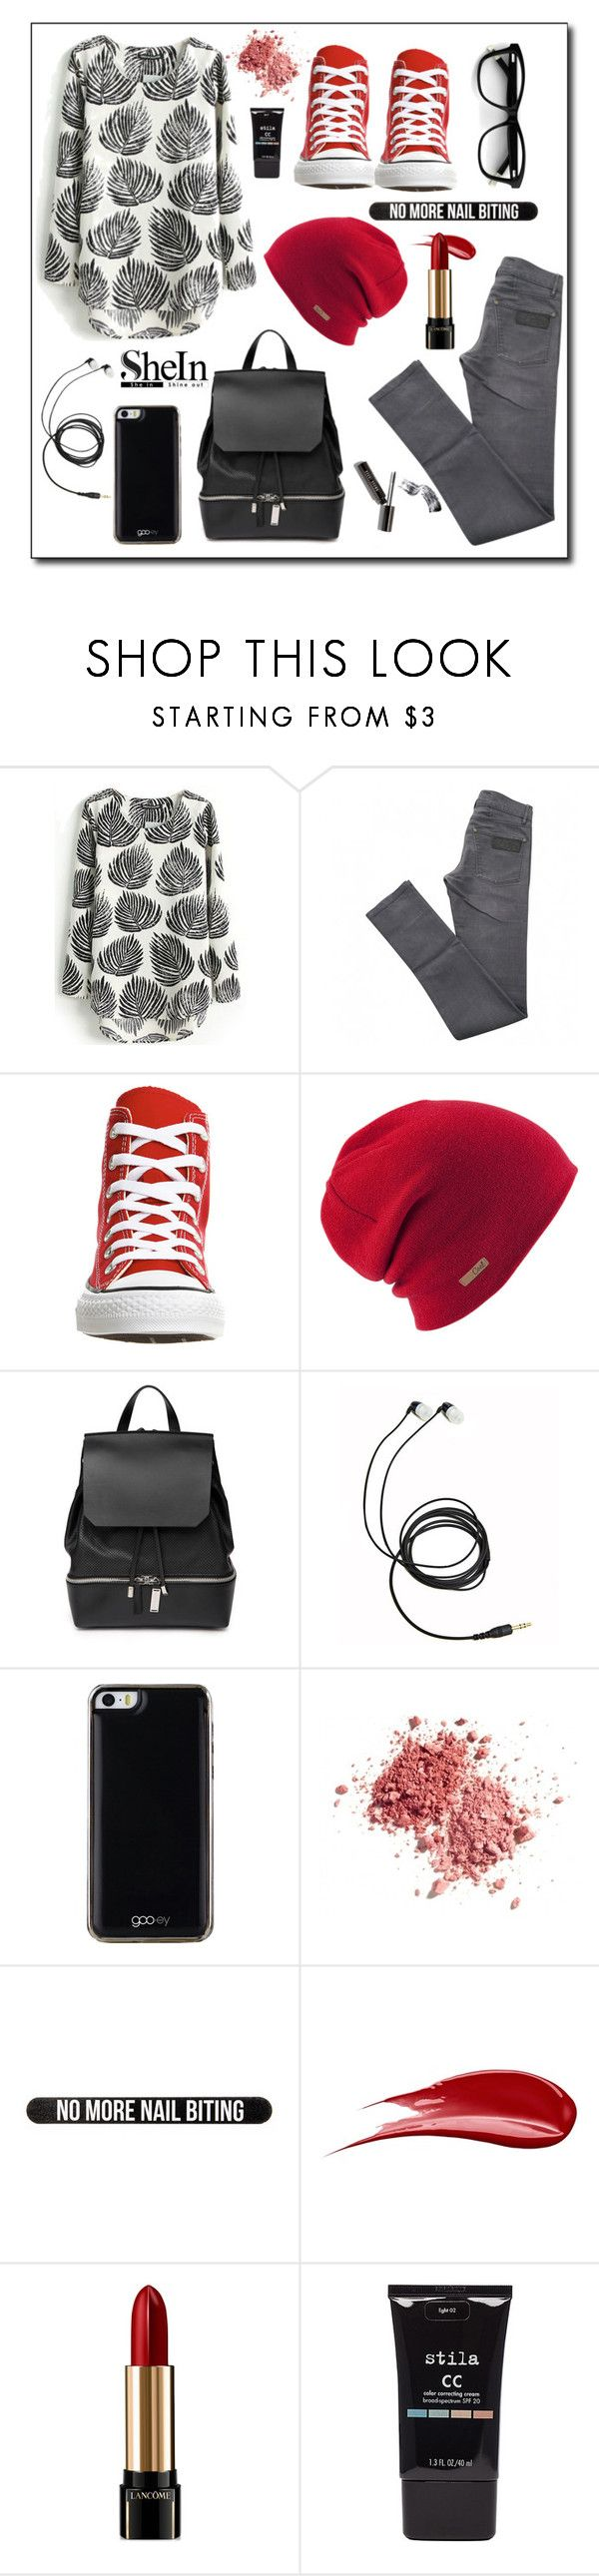 """""""grey+red"""" by dheaelvianty ❤ liked on Polyvore featuring April 77, Converse, Coal, COSTUME NATIONAL, Gooey, Bershka, Hourglass Cosmetics, Lancôme and Stila"""